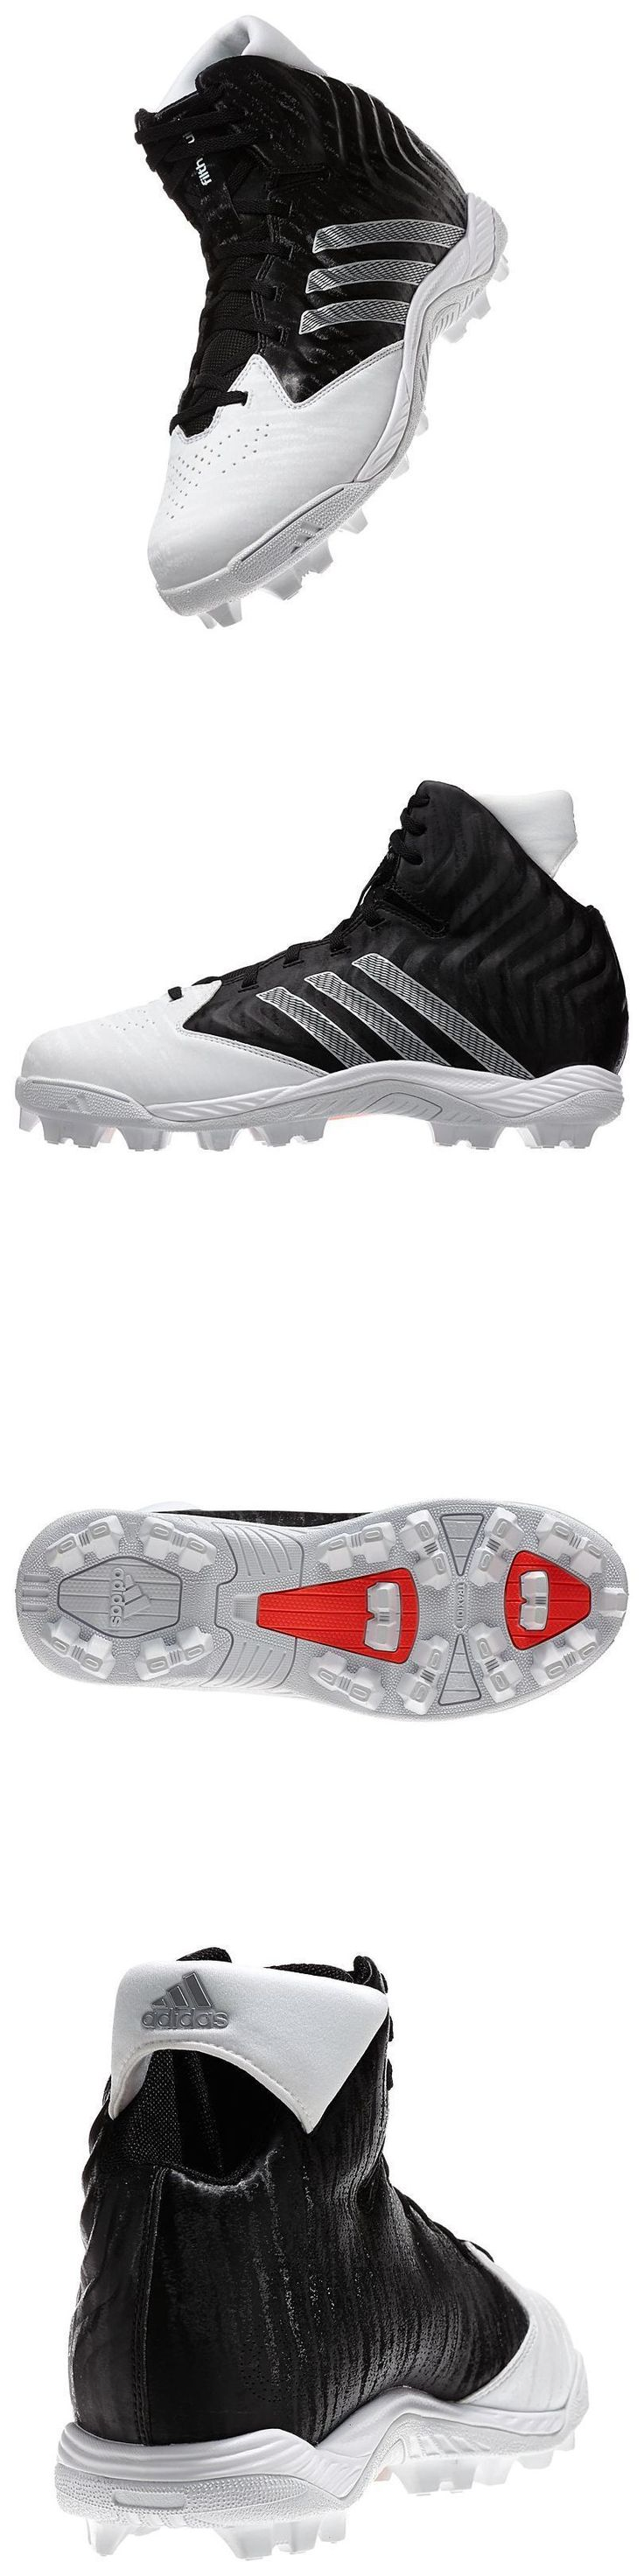 Youth 159118: Adidas Filthyquick Md Wide New Youth Size 4Y J Football Cleats Black And White BUY IT NOW ONLY: $30.0